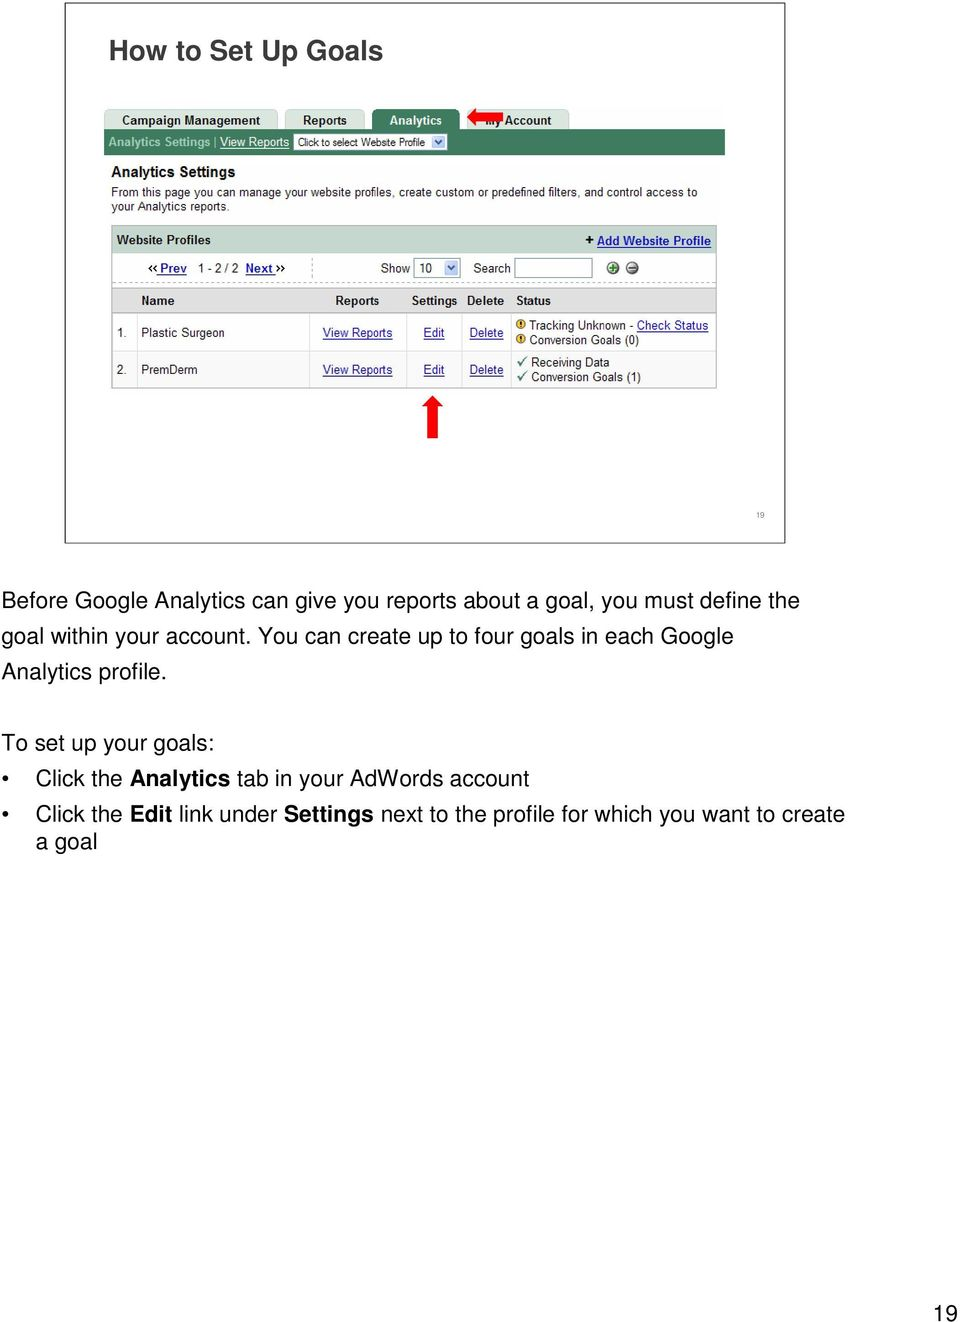 You can create up to four goals in each Google Analytics profile.